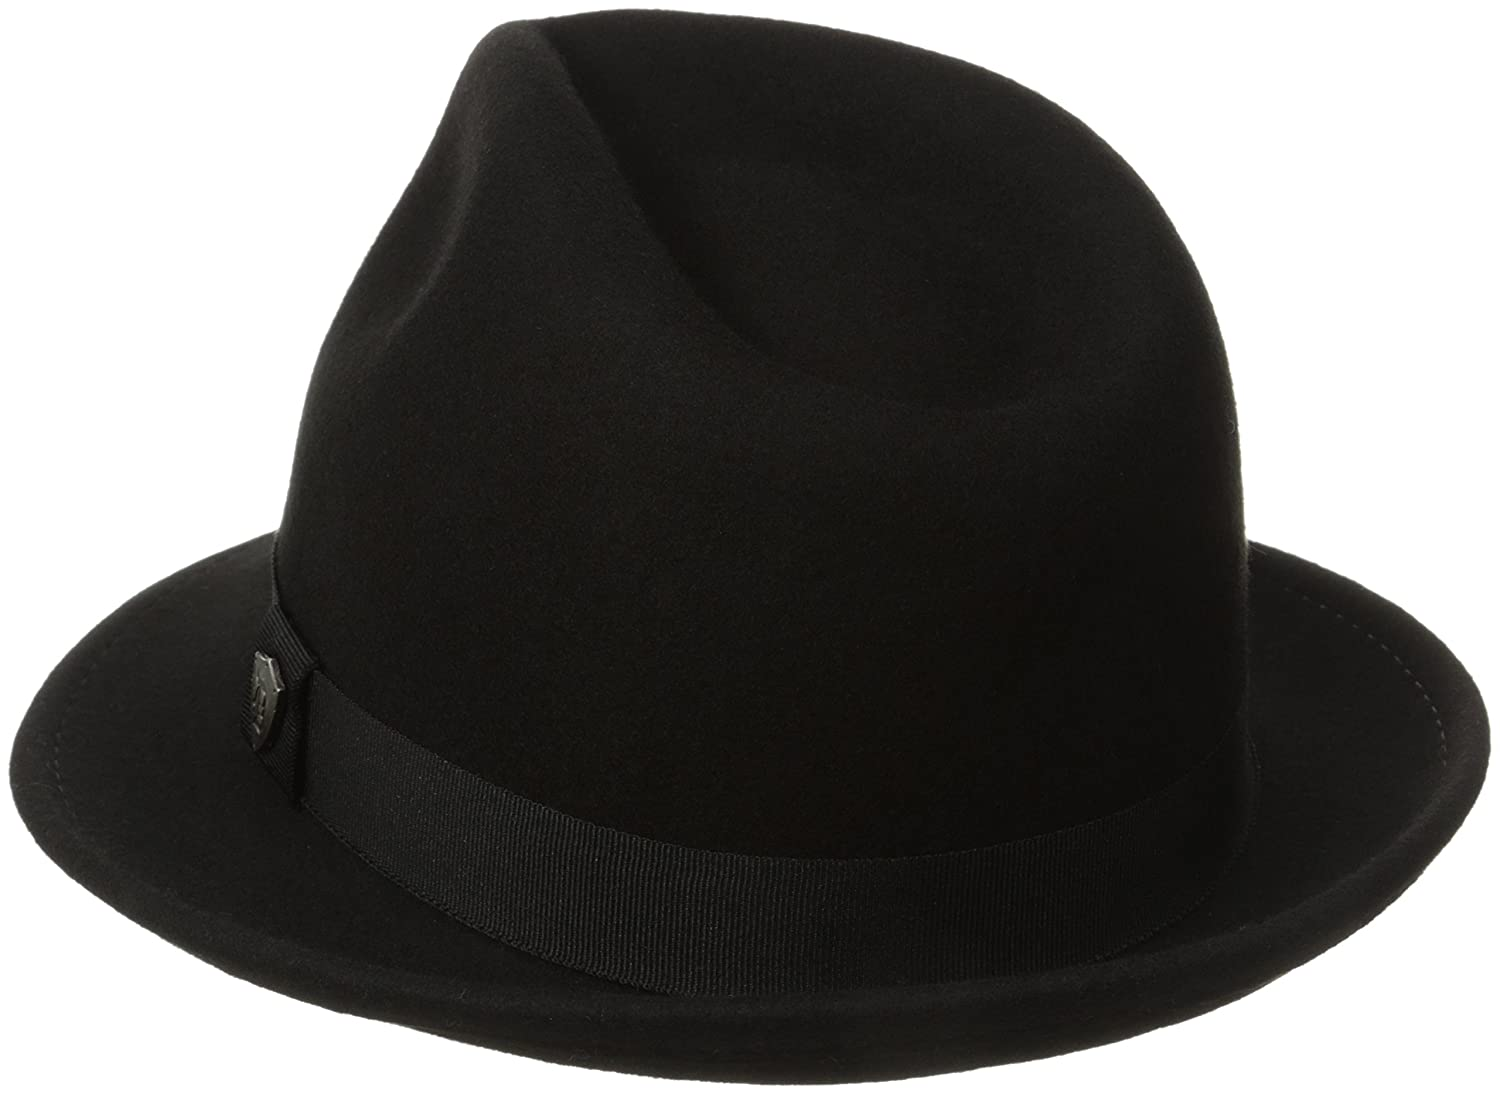 Men's Vintage Style Hats Dorfman Wool Felt Hat $44.95 AT vintagedancer.com